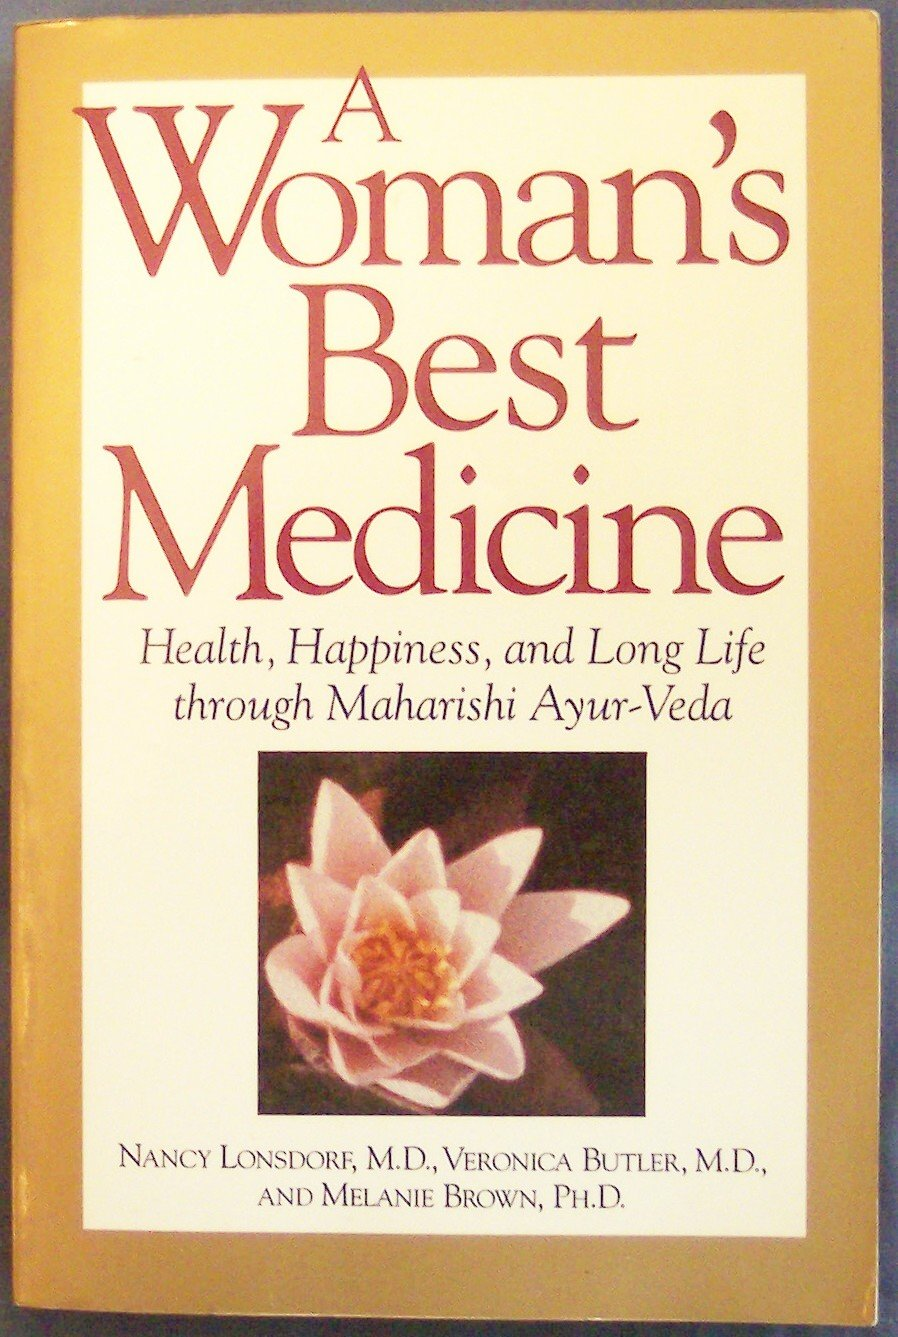 A Woman's Best Medicine - Health, Happiness and Long Life Through Maharishi Ayur-Veda